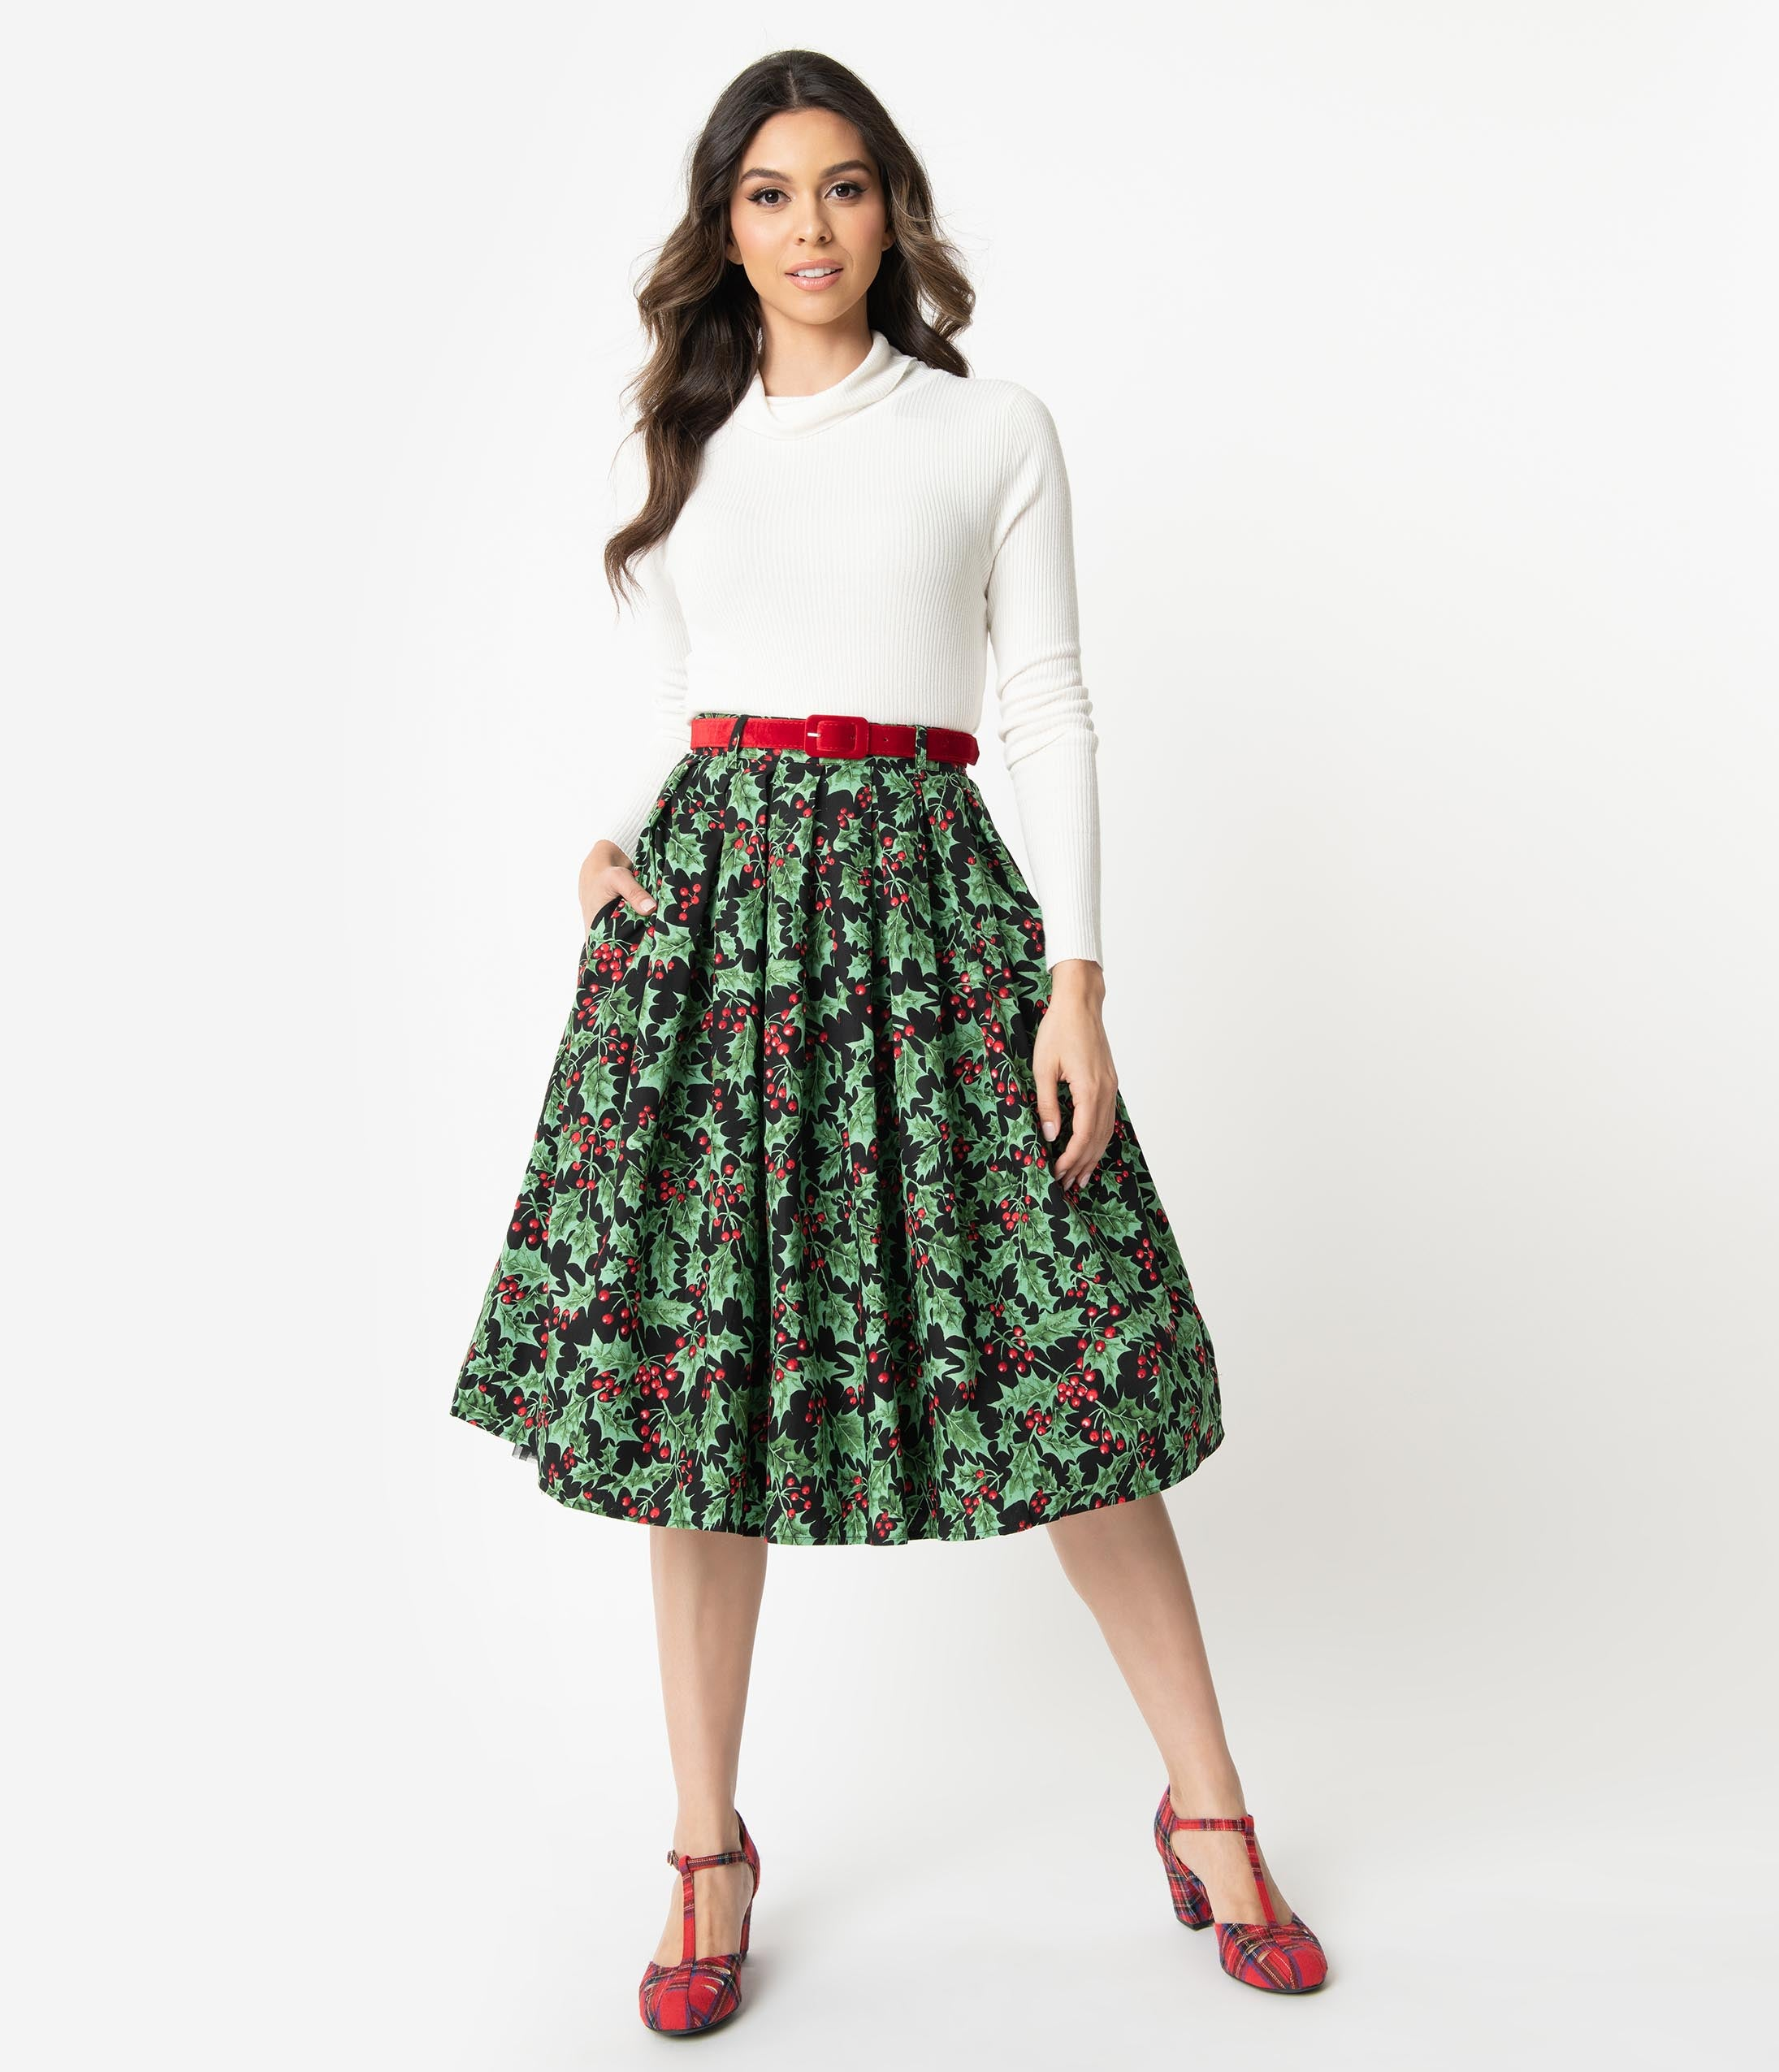 1950s Swing Skirt, Poodle Skirt, Pencil Skirts Holly Berry Print Pleated Cotton Swing Skirt $62.00 AT vintagedancer.com